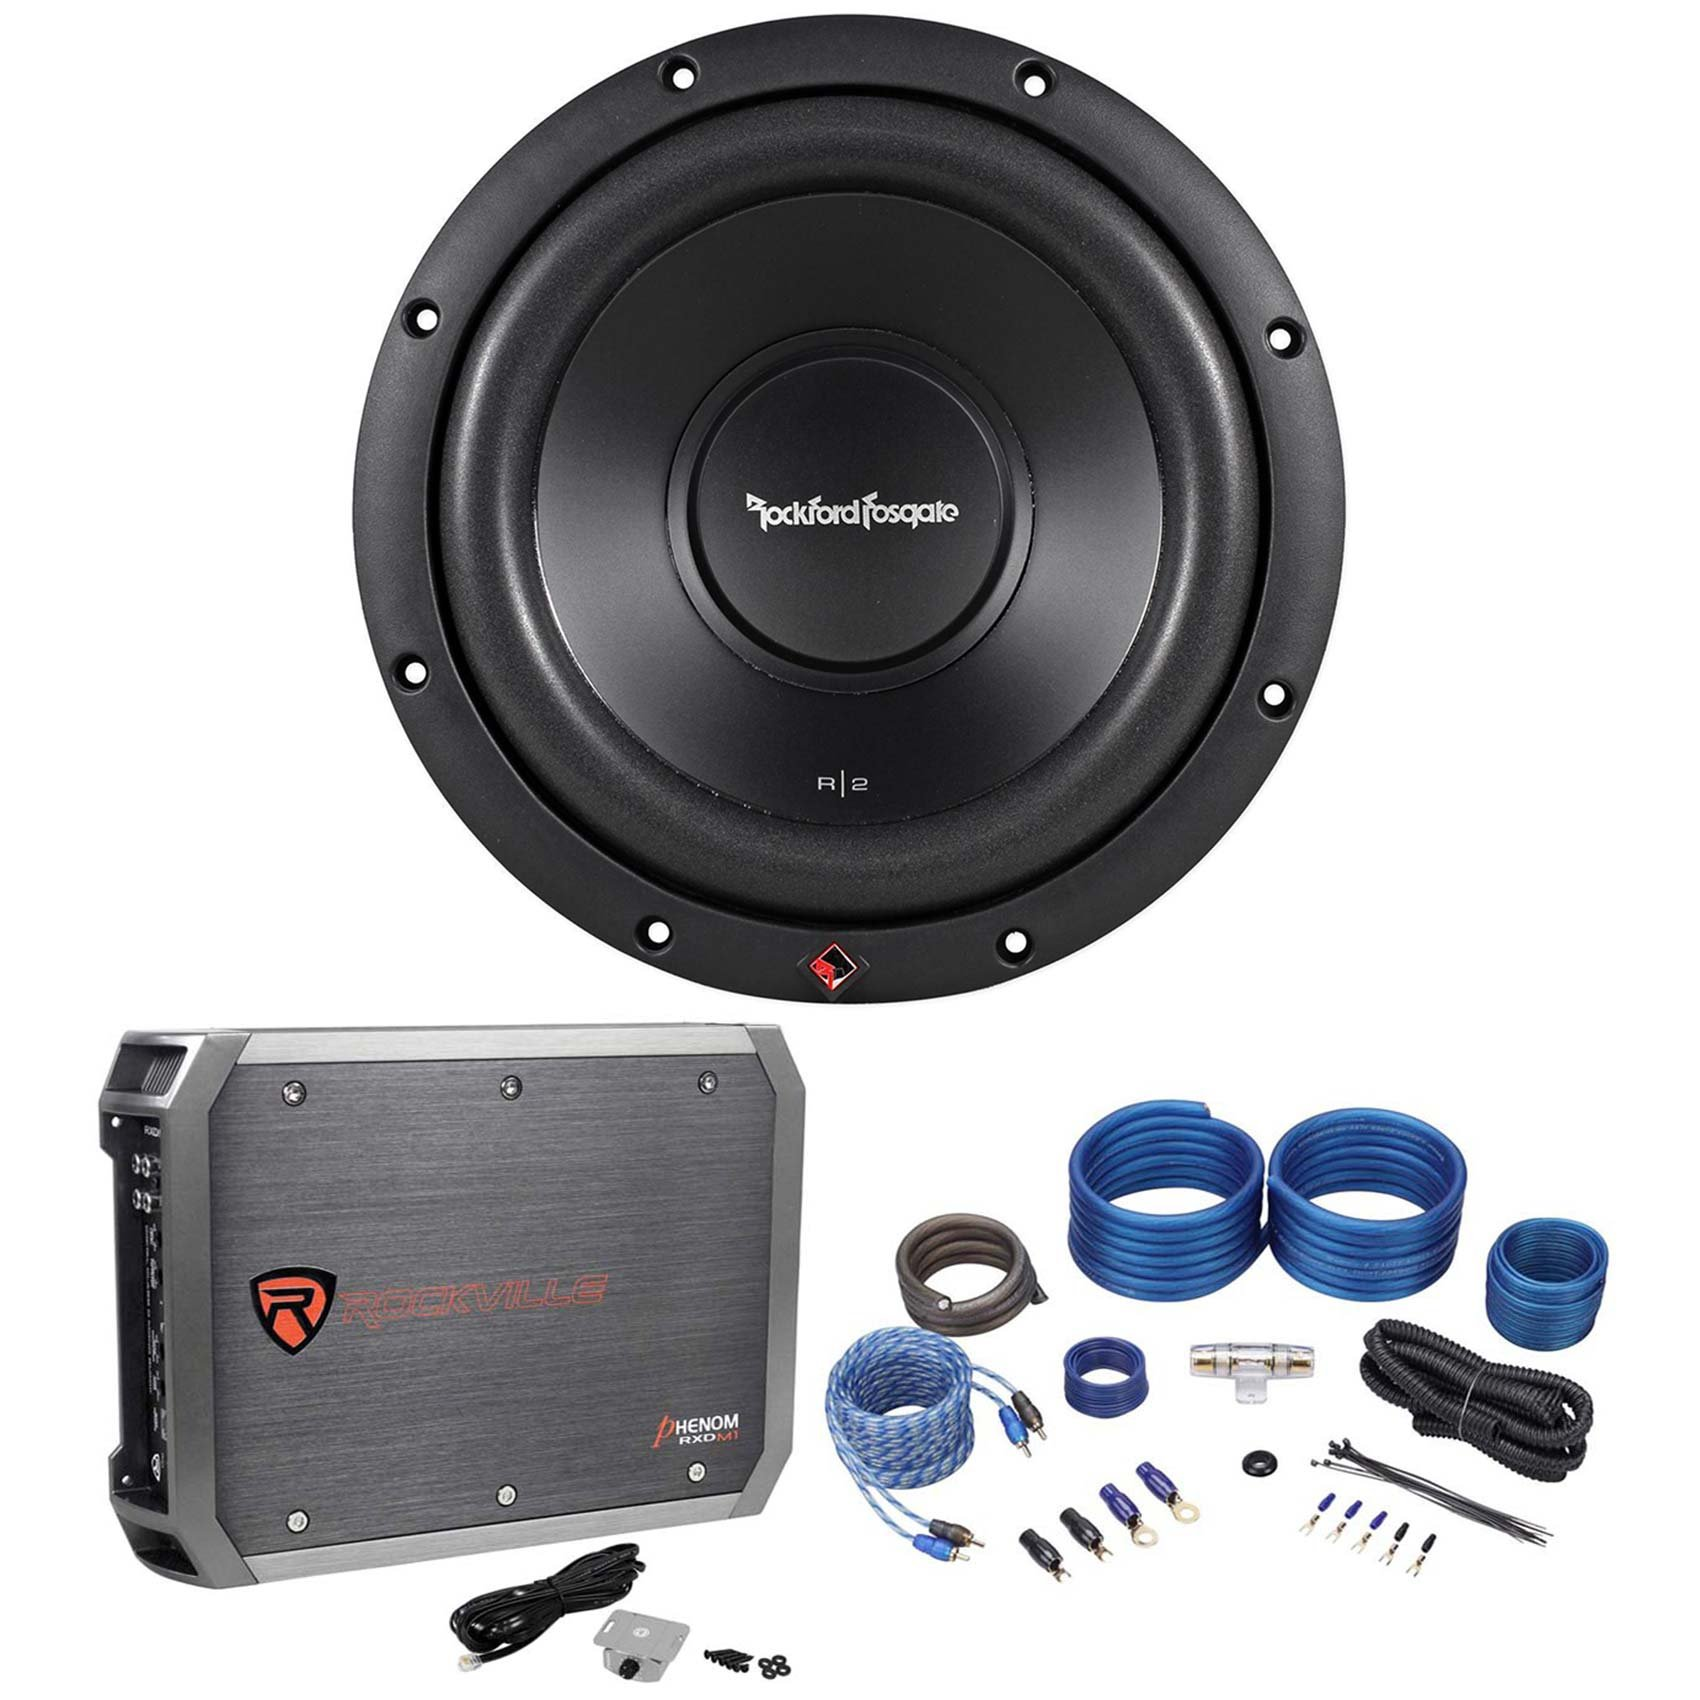 Cheap 500w Amplifier Find Deals On Line At Alibabacom Details About Sub 150w Subwoofer Board Kit 2sa1943 2sc5200 Get Quotations Rockford Fosgate R2d2 10 250w Car Rms Mono